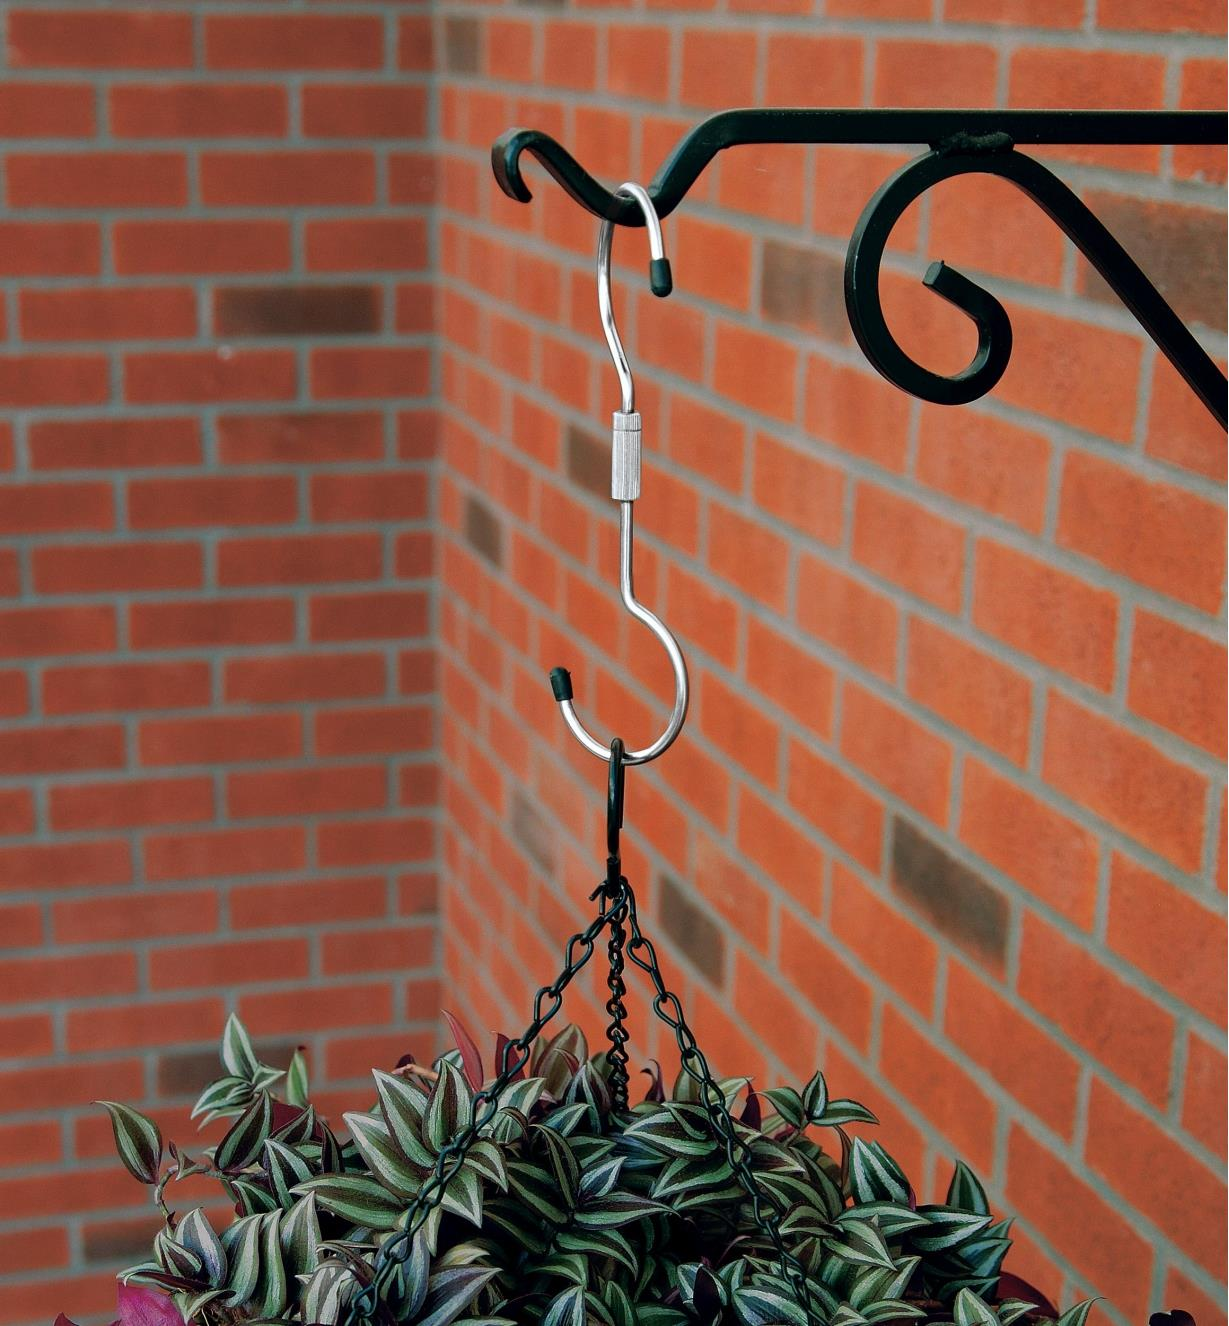 A swivel hook hanging a planter on a wall bracket